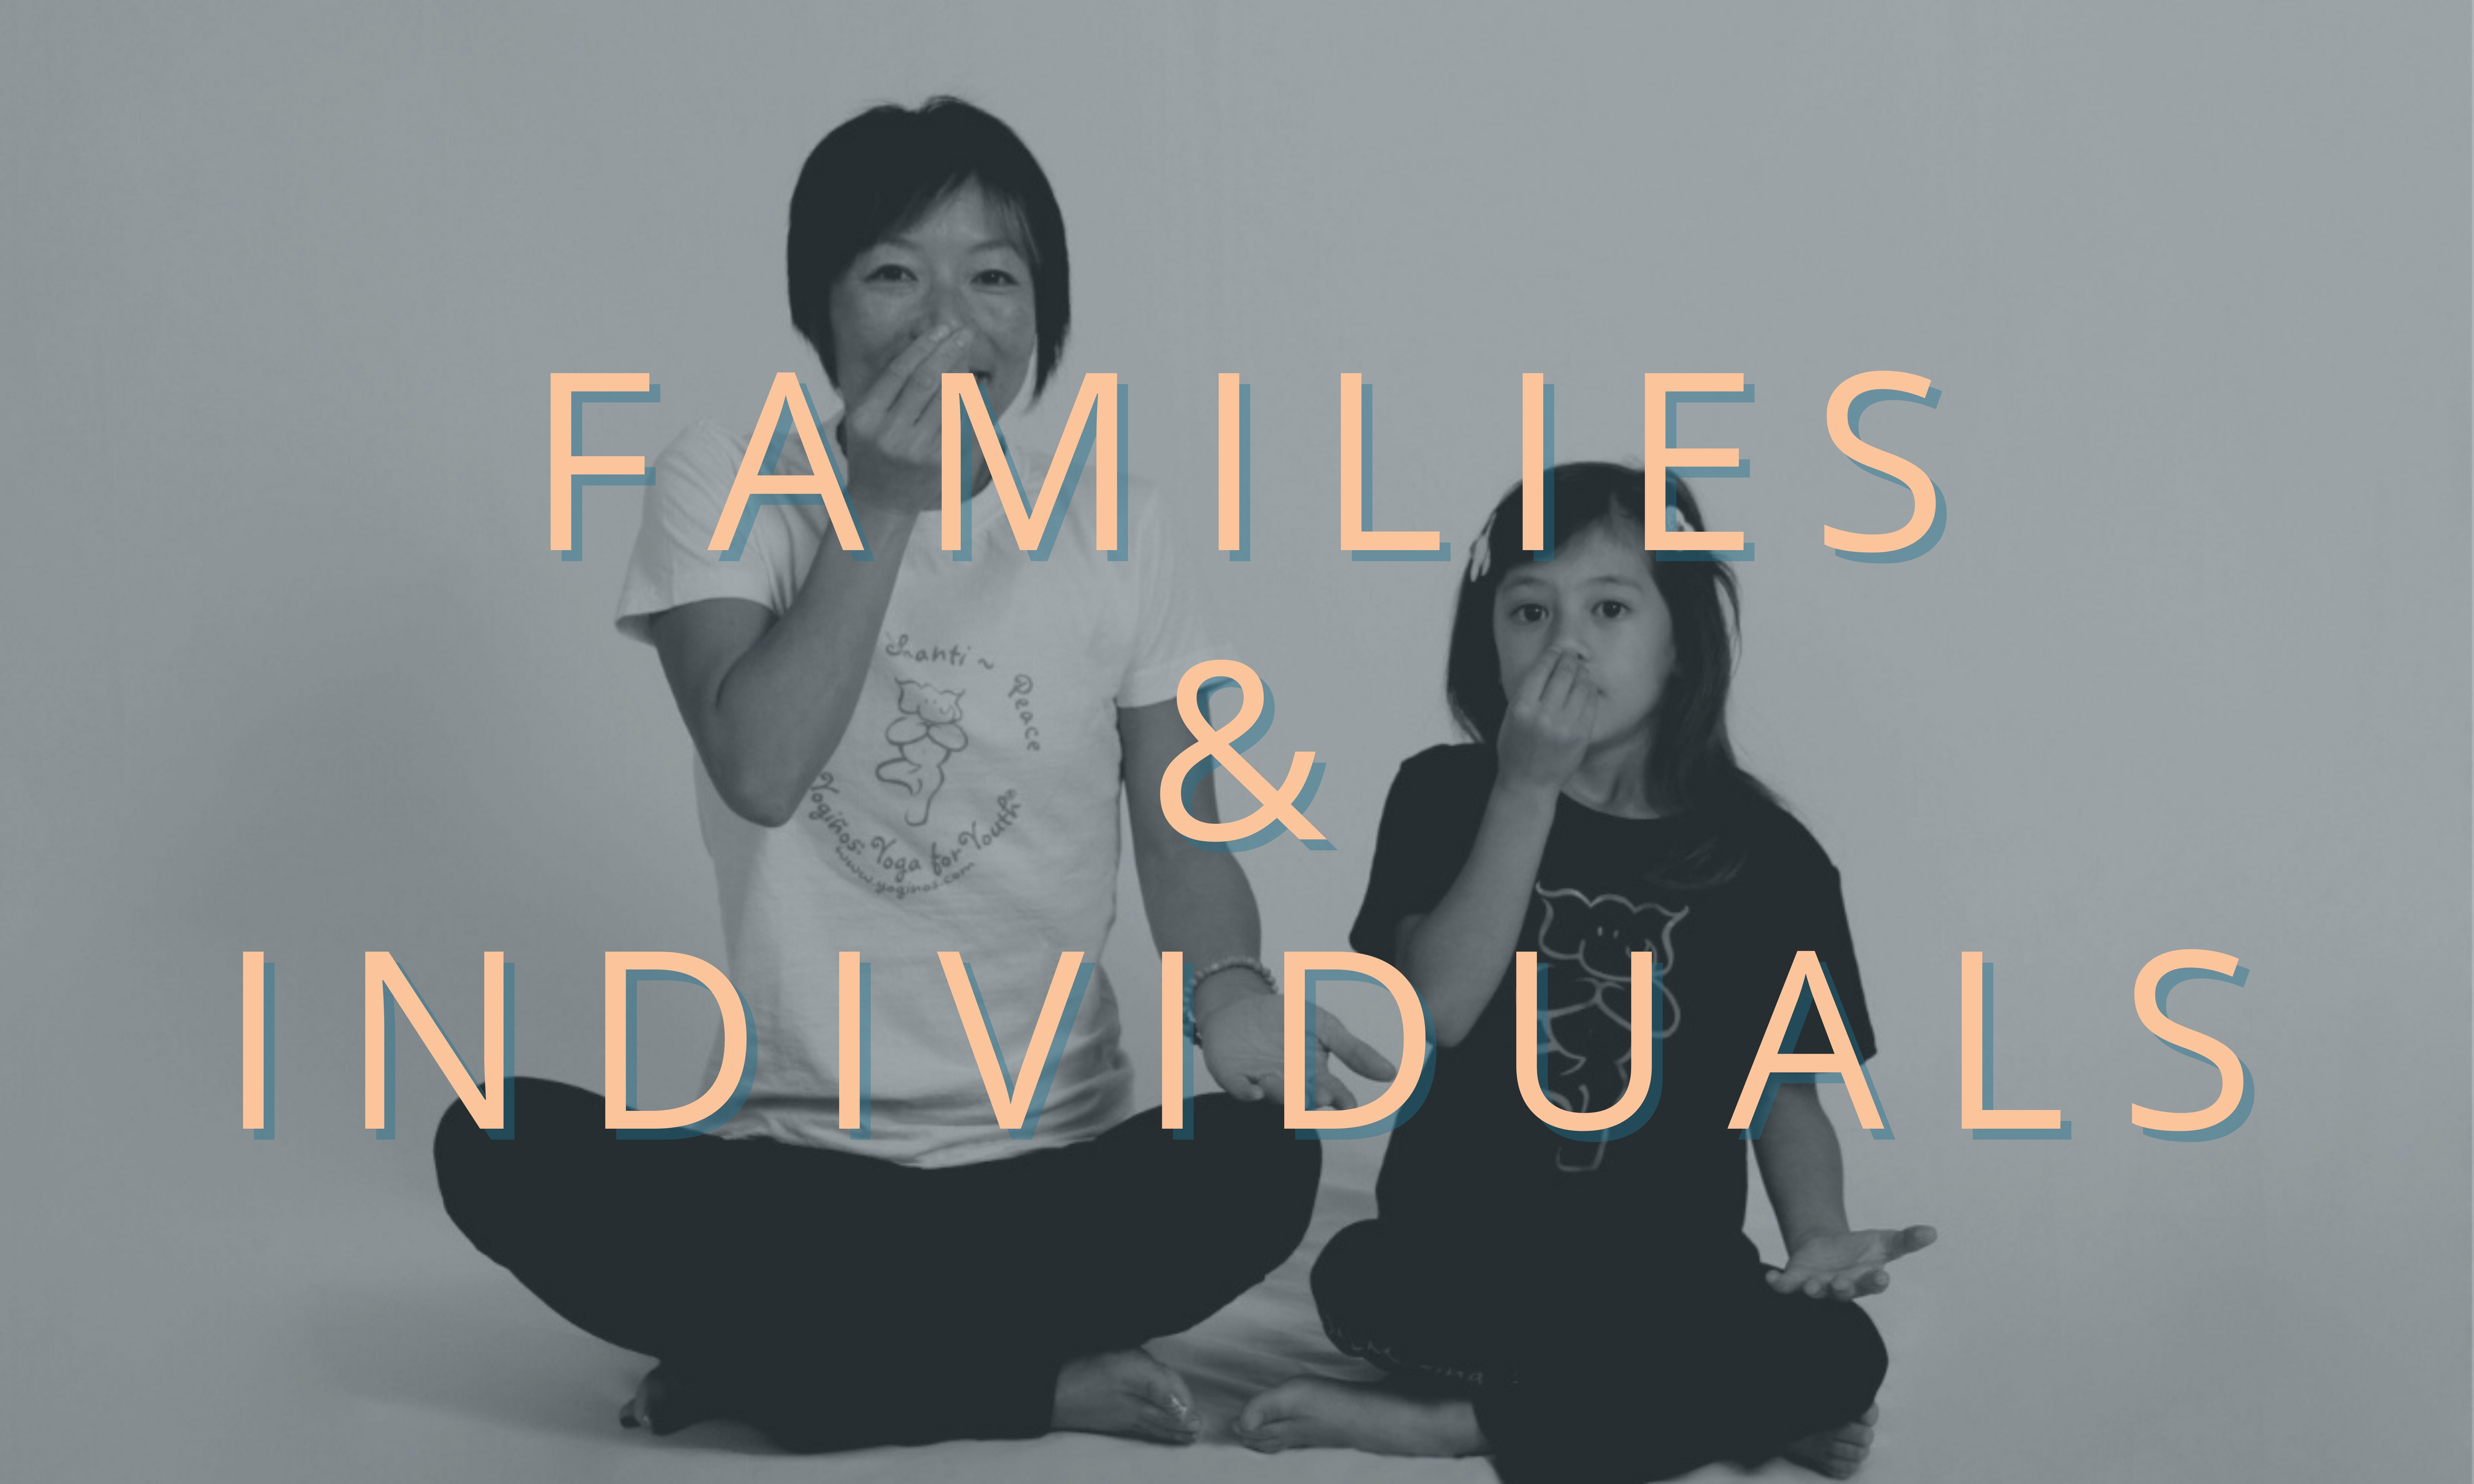 Photo of teacher and student with text - Families & Individuals